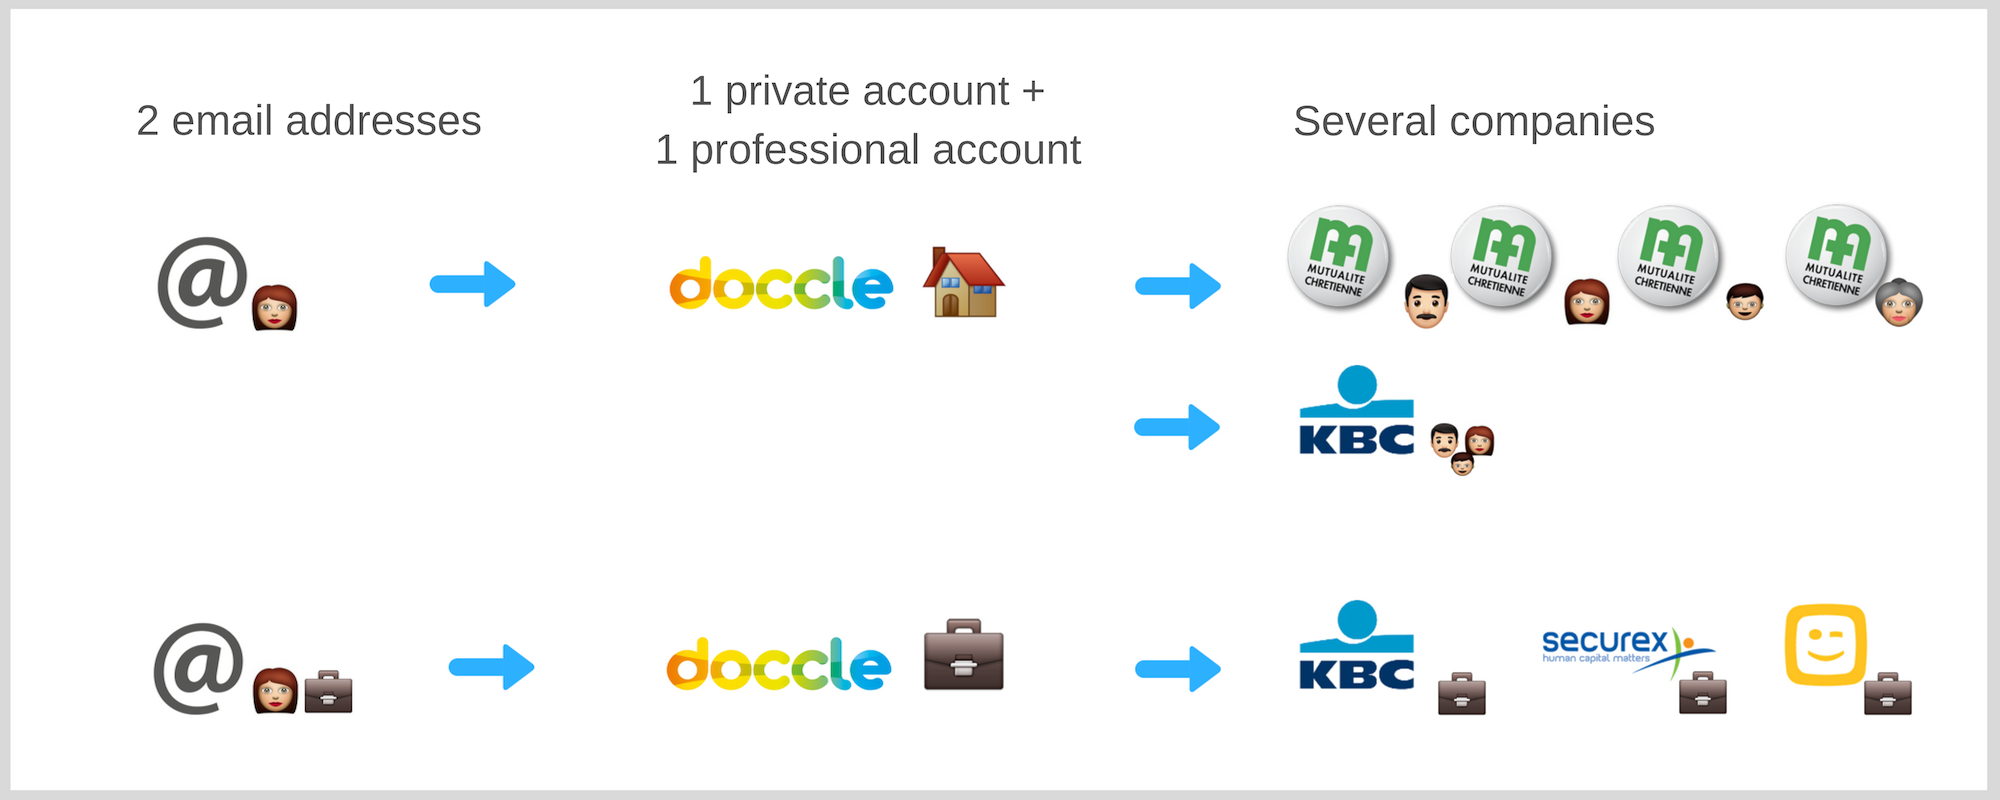 Digital organisation Doccle account3